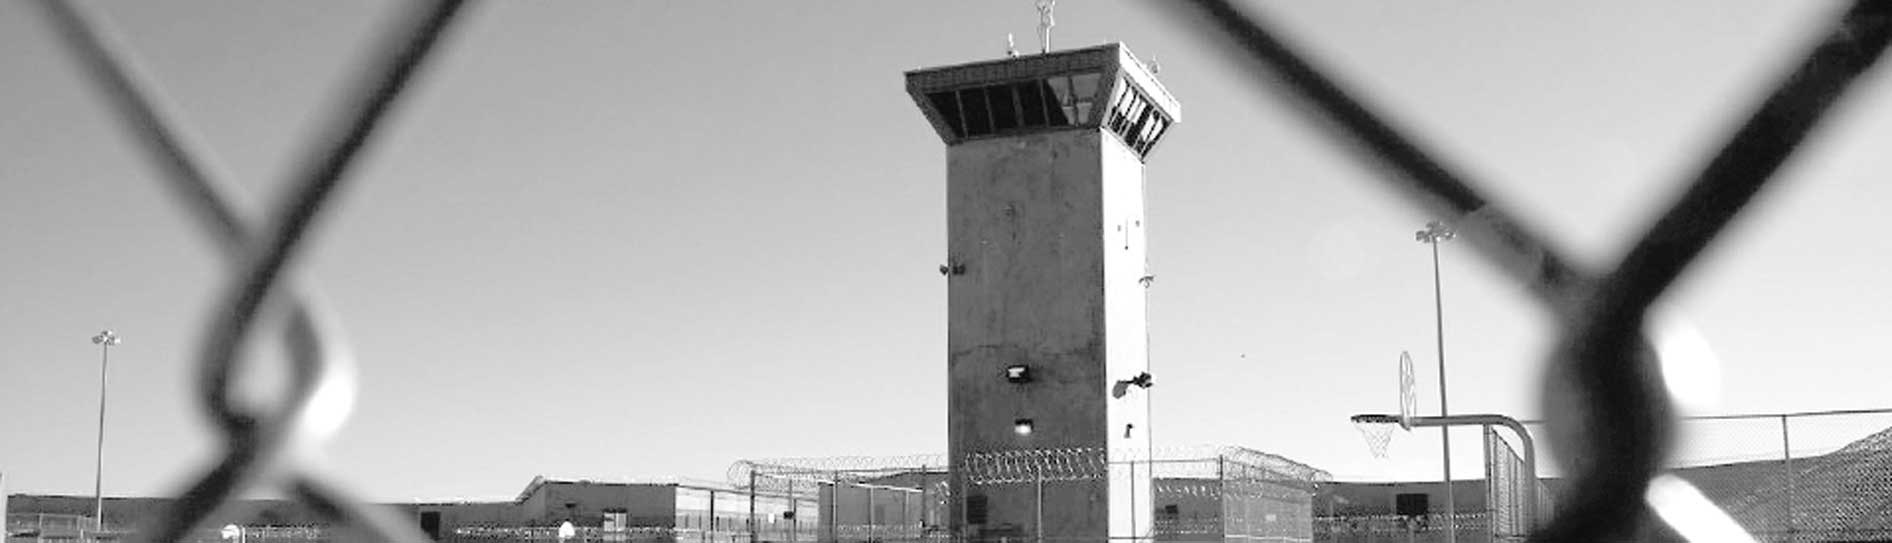 Some prisoners are forced to pay for incarceration | New